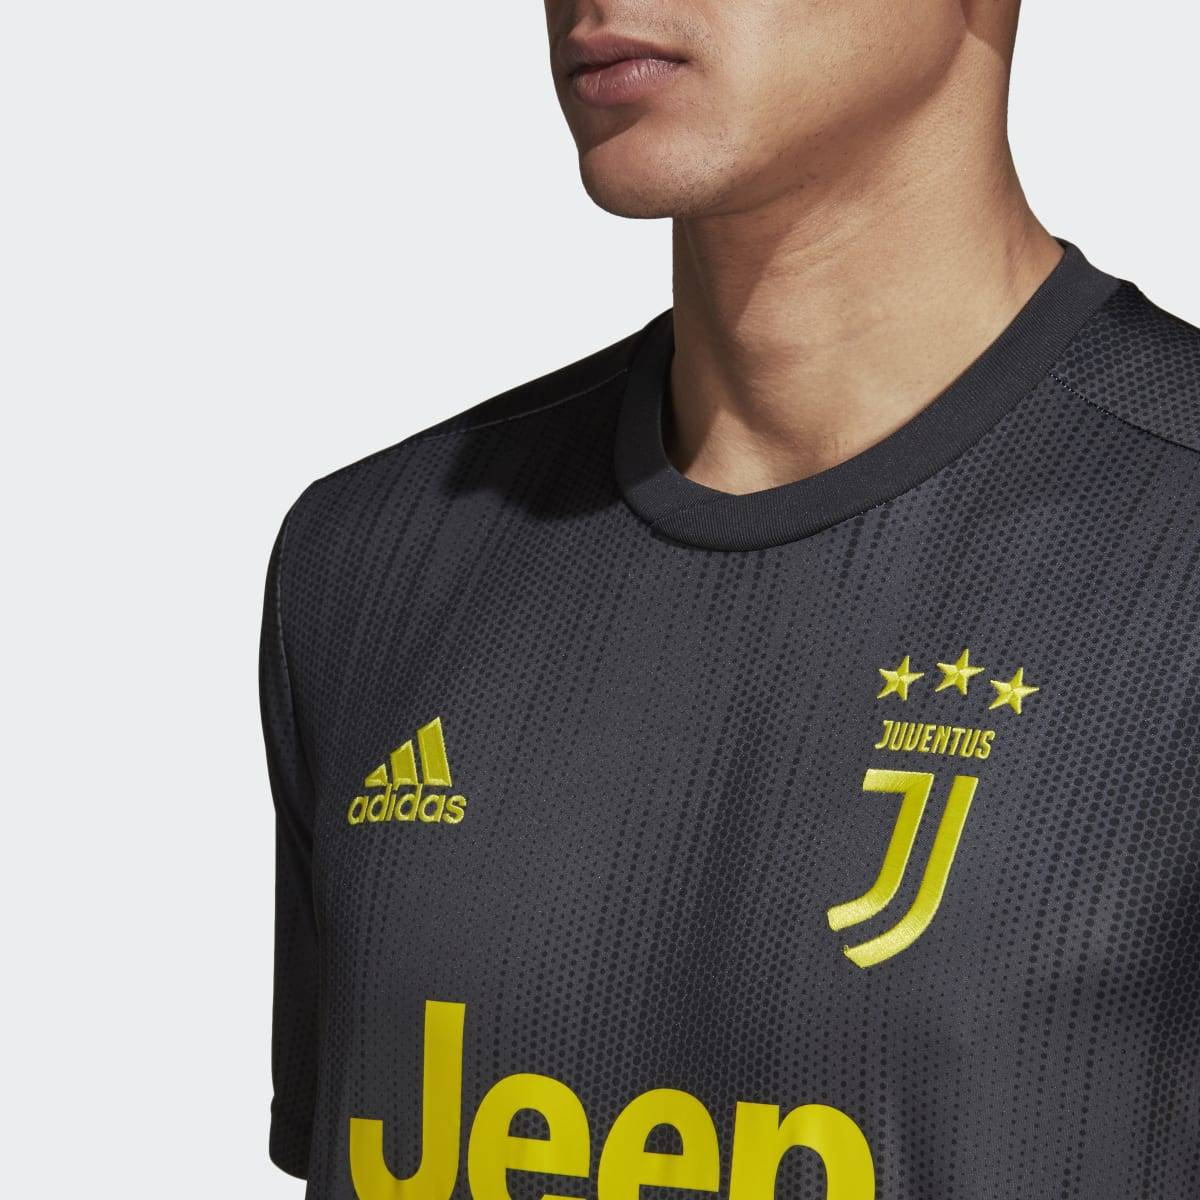 finest selection ddfad fe054 Juventus 2018-19 Adidas Third Kit | 18/19 Kits | Football ...